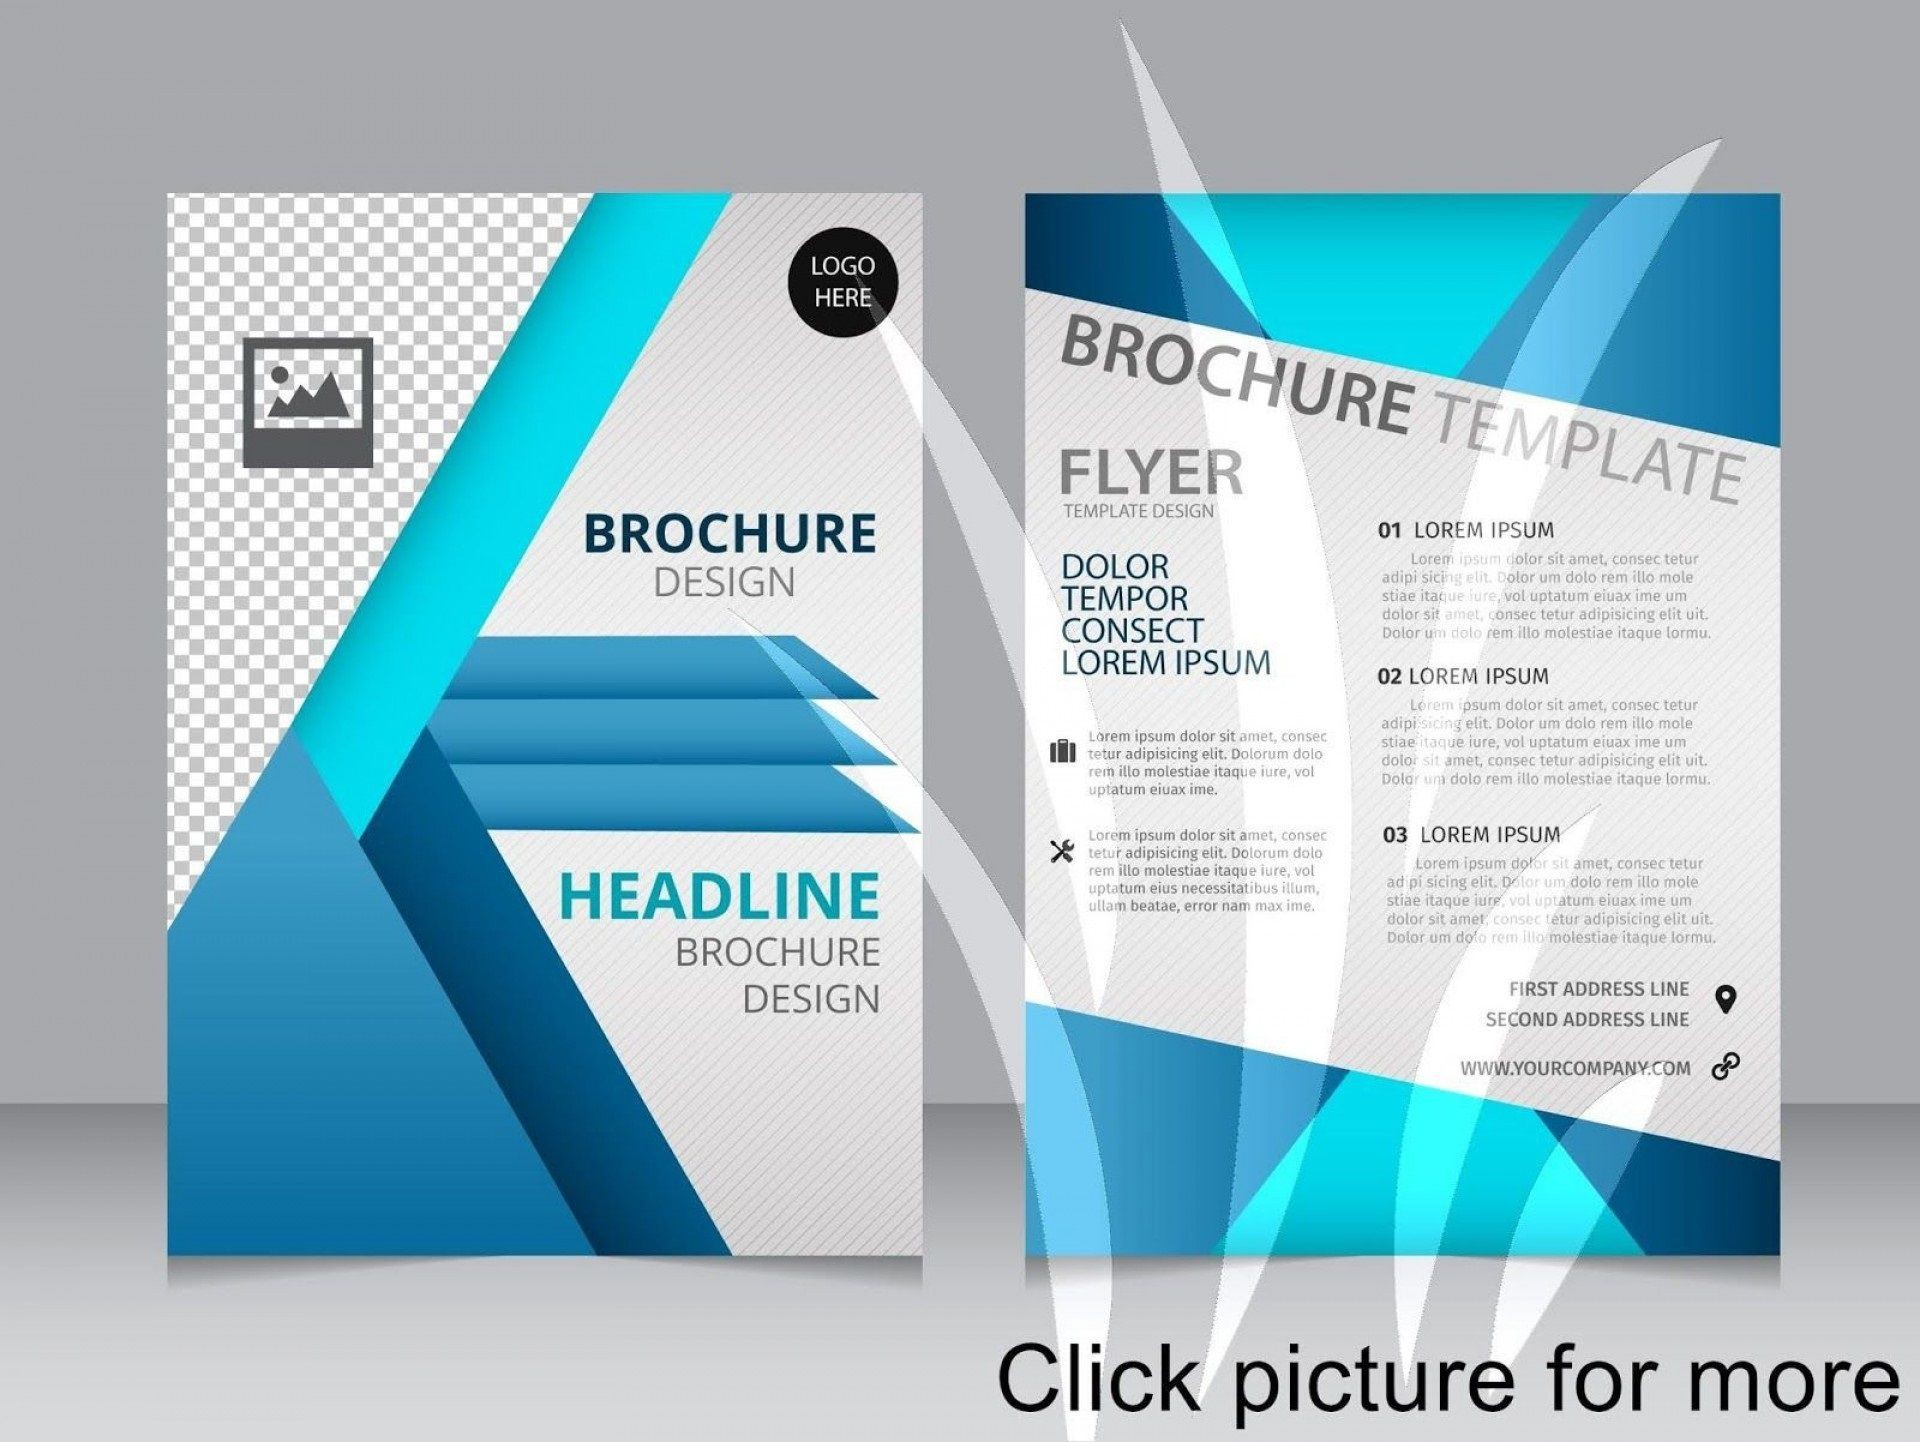 009 Unforgettable Template Brochure For Microsoft Word Free Picture  Flyer Bowling Tri Fold 20101920